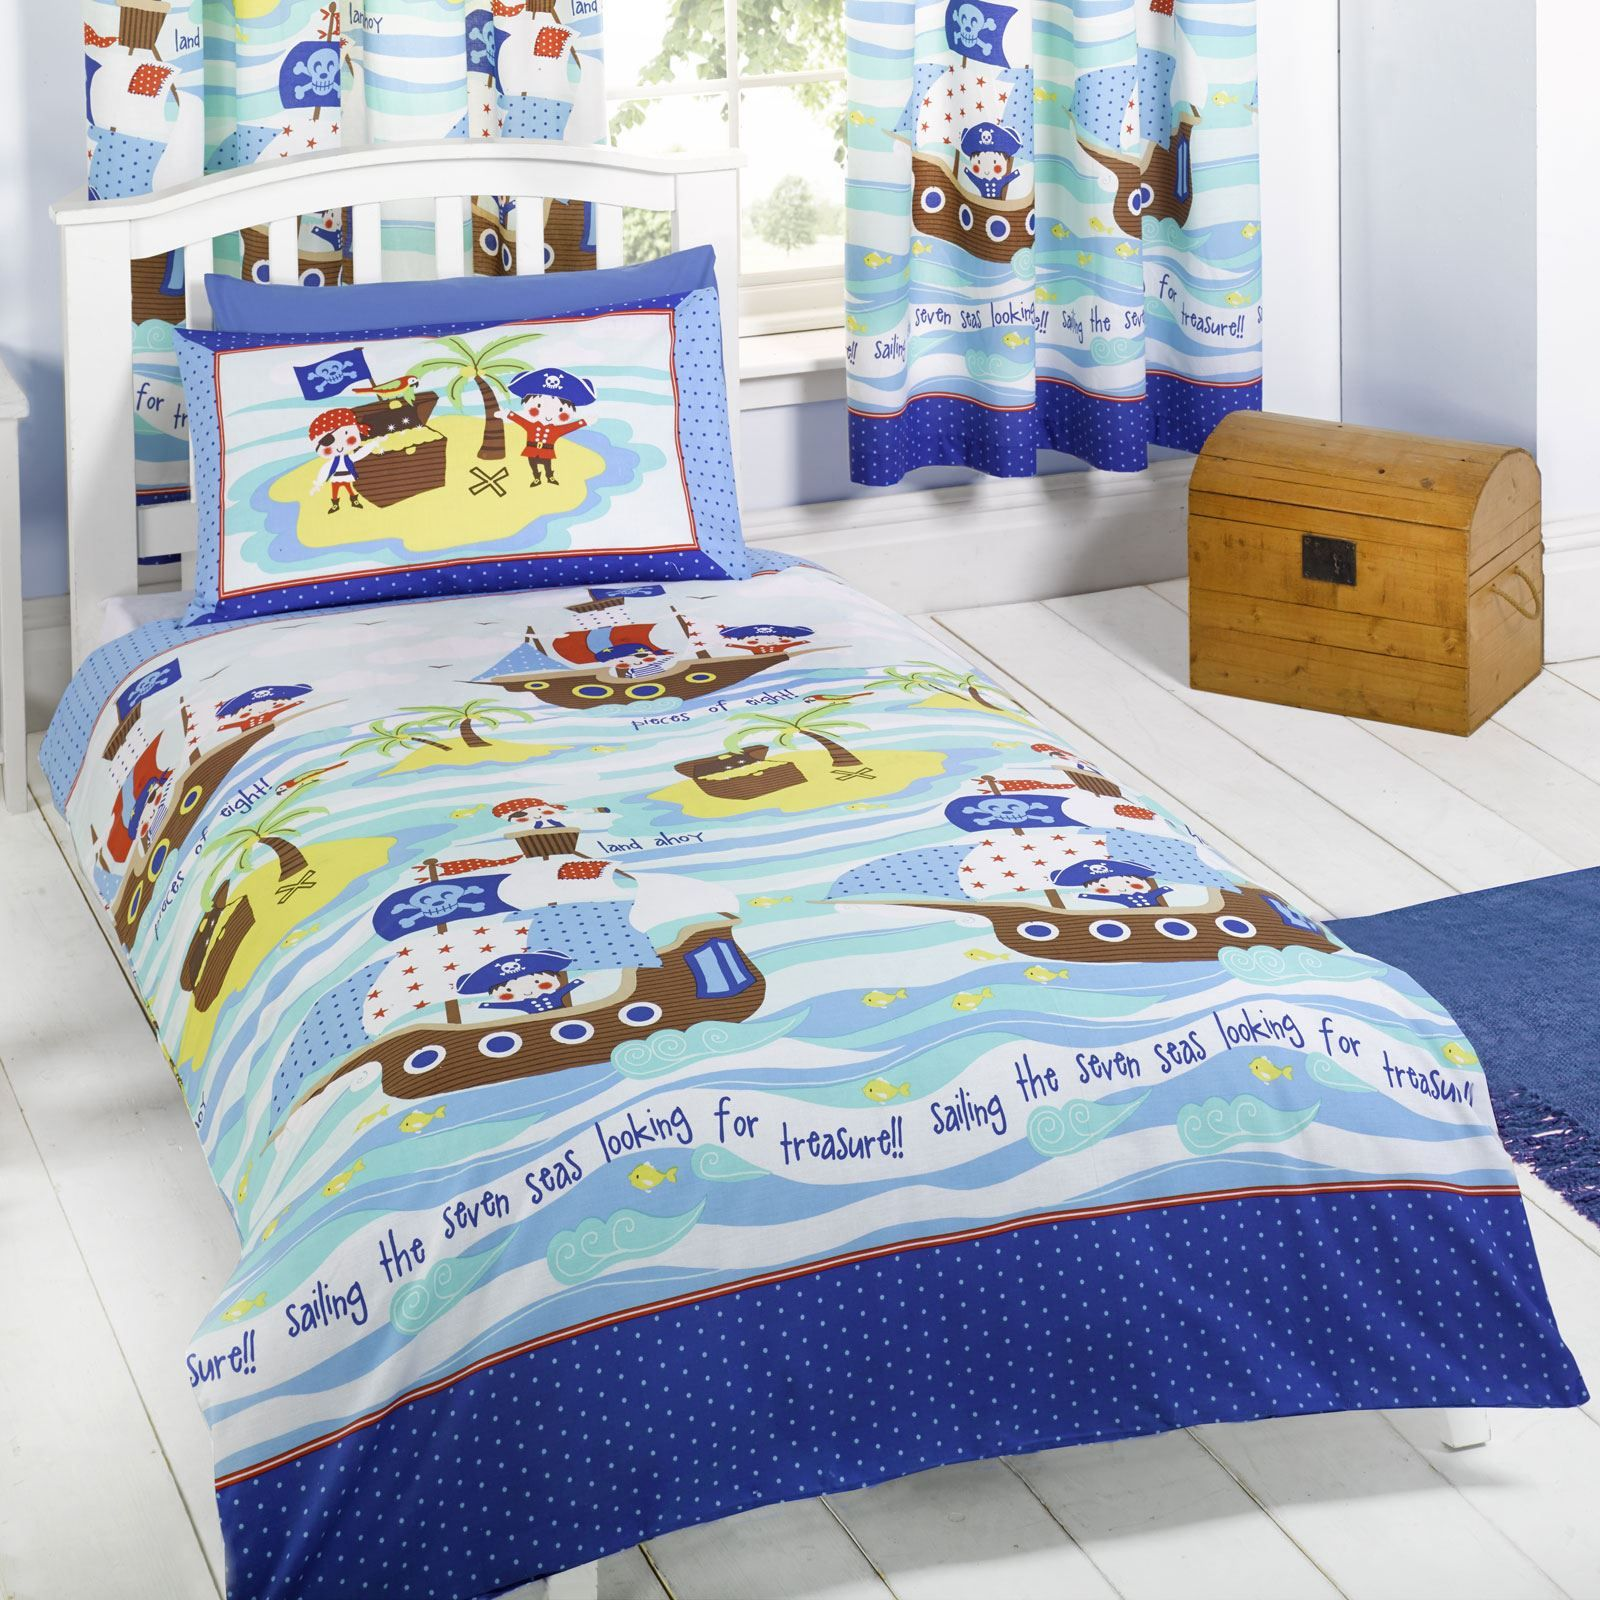 Seven seas pirates bedding bedroom accessories duvet for Bedroom accessories sets